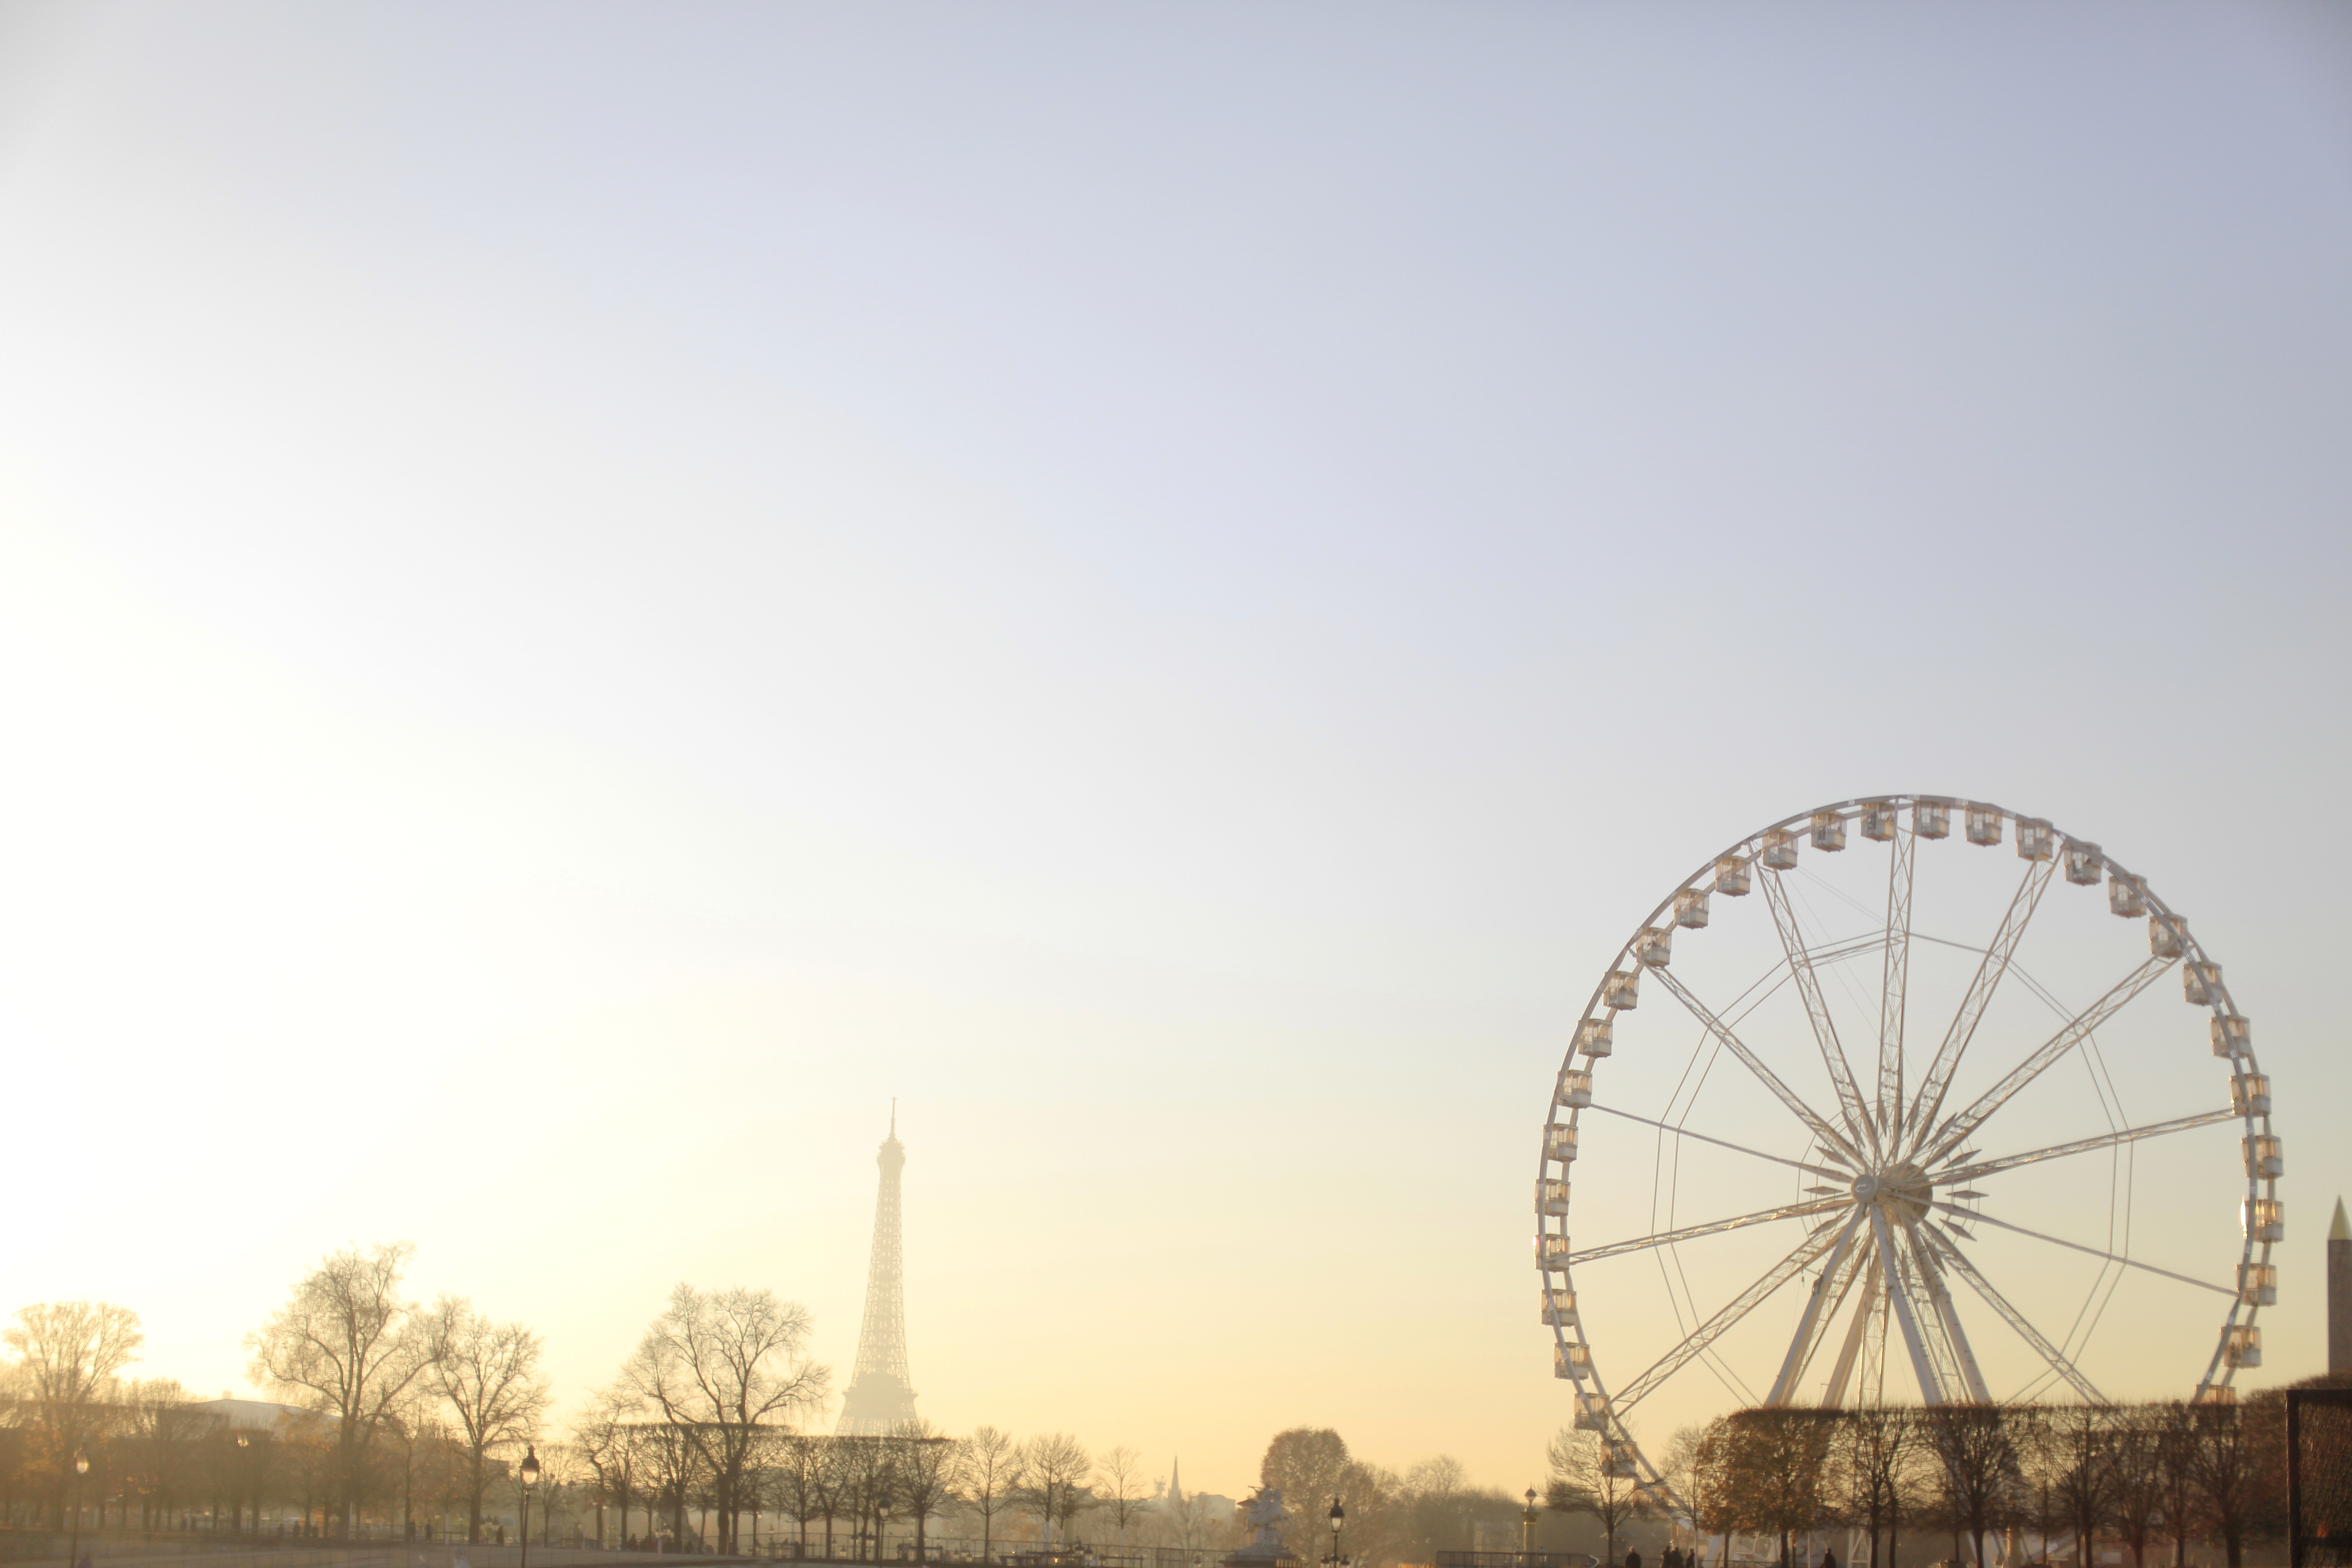 HiP Paris blog. Living, loving, learning in Paris. Mystical light over the Grand Roue and the Eiffel Tower as seen from the Tuileries. Photo by Marjorie Preval.